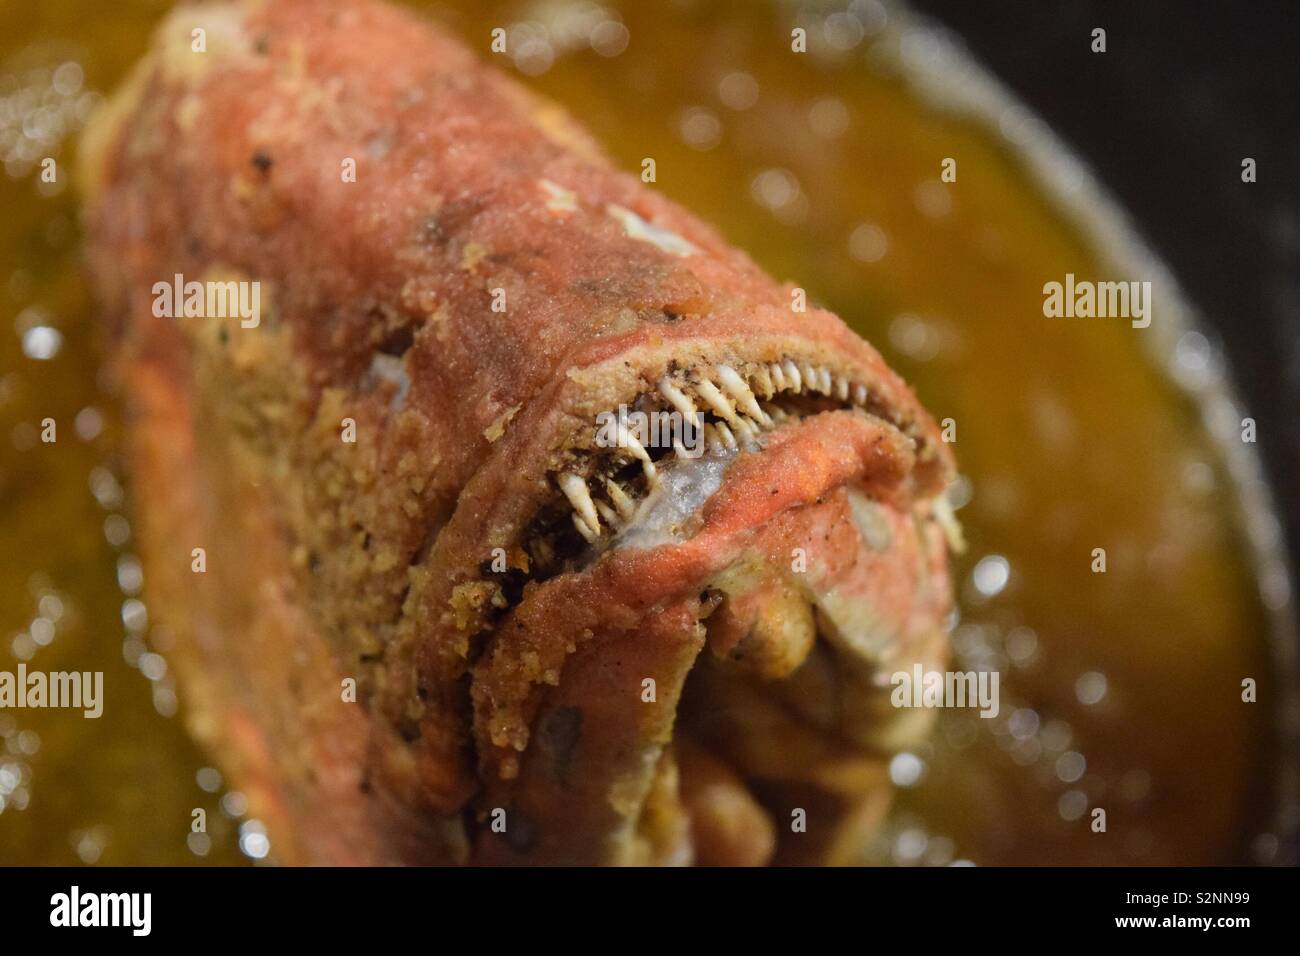 Whole fish head fried to perfection! Stock Photo